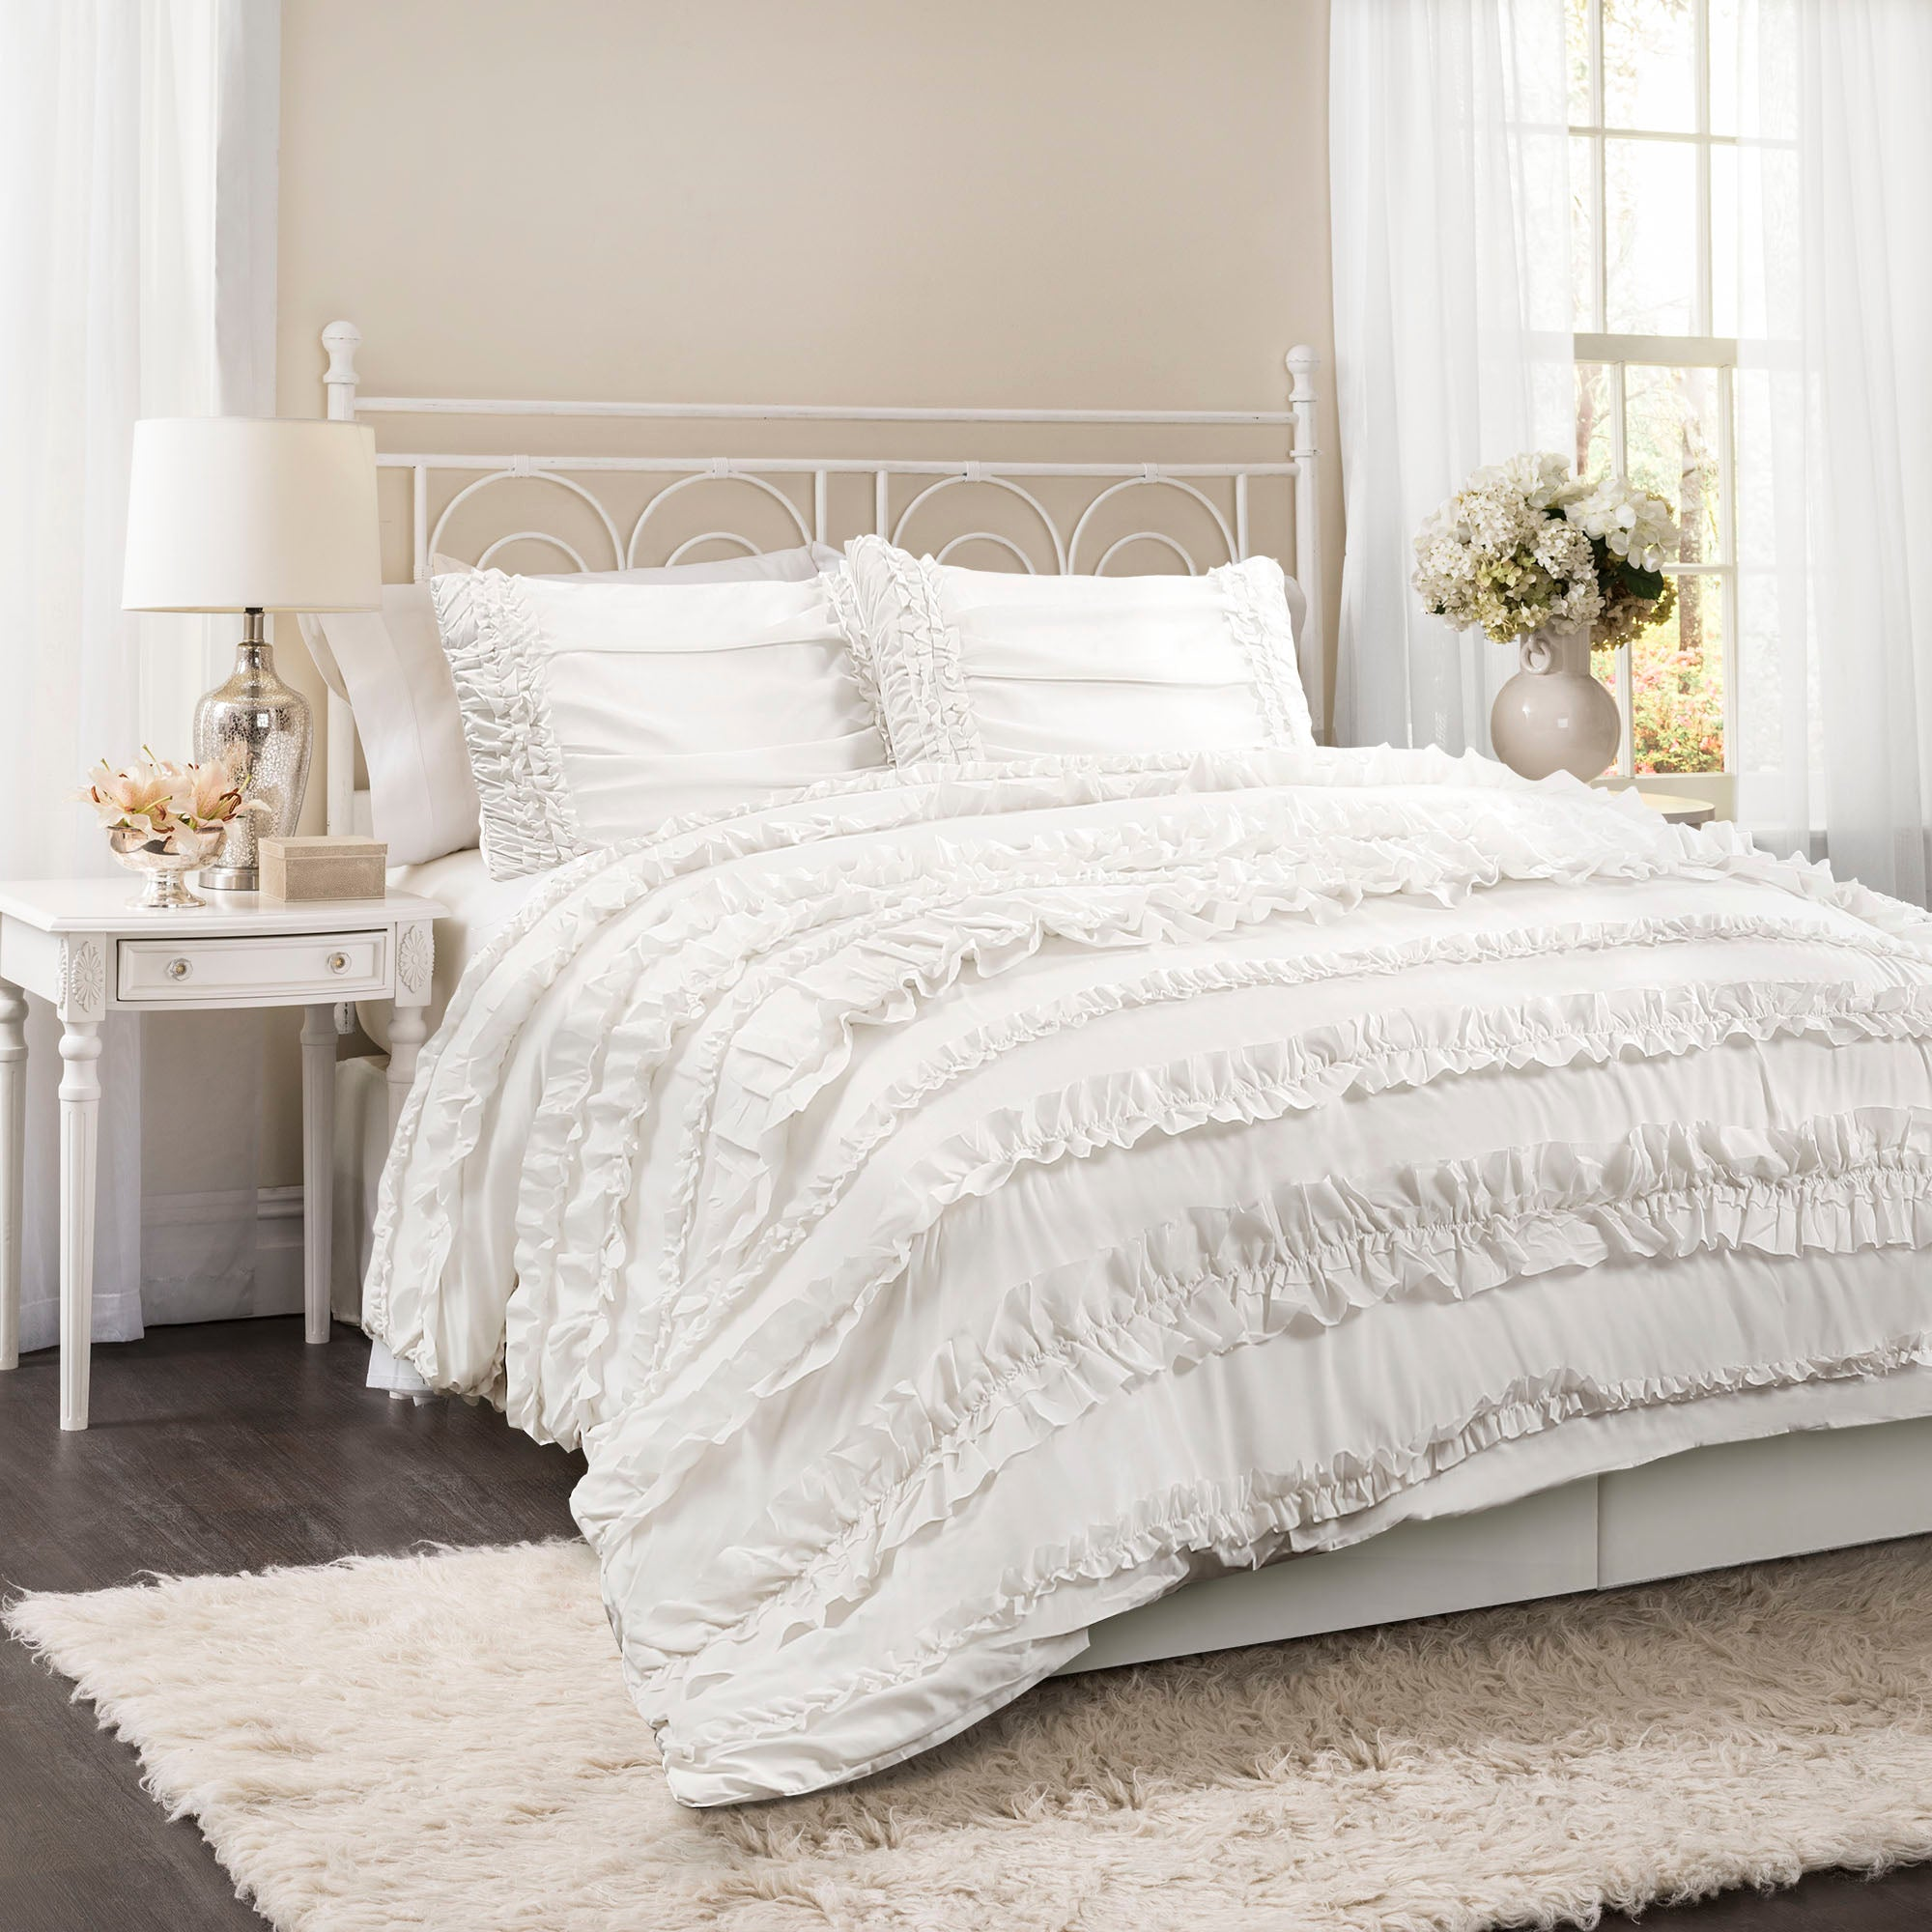 Belle 4 Piece Comforter Set